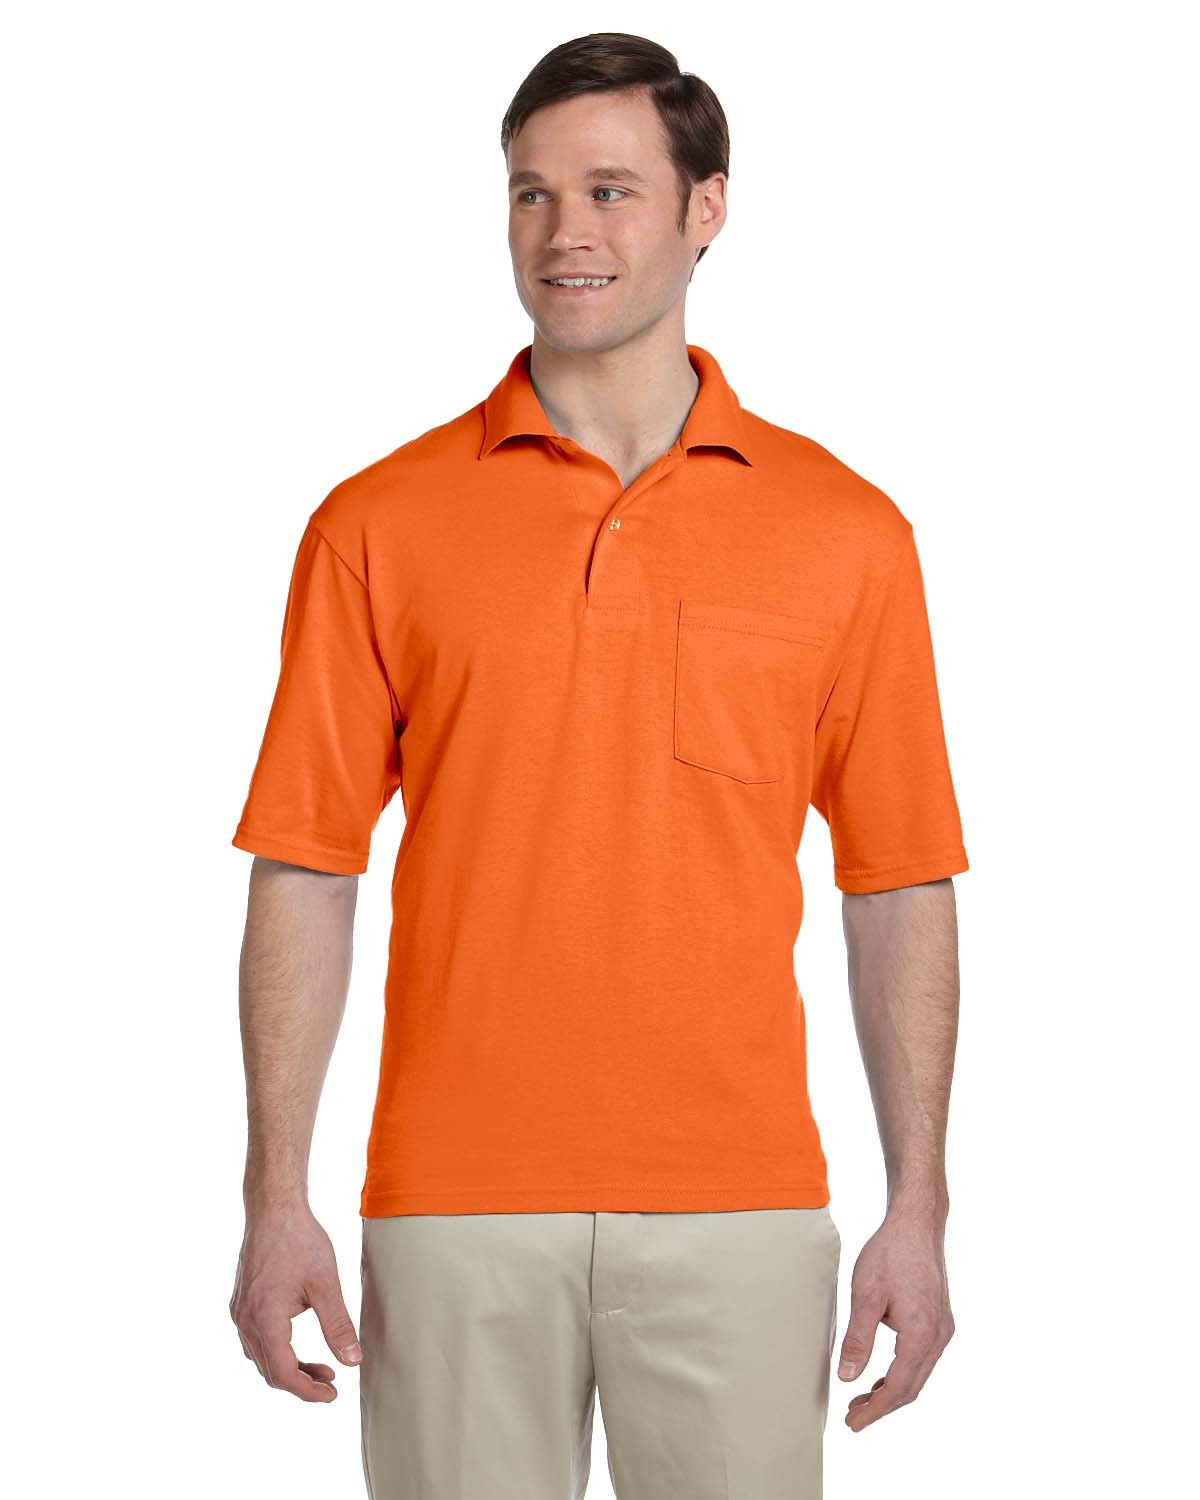 436P Jerzees SAFETY ORANGE